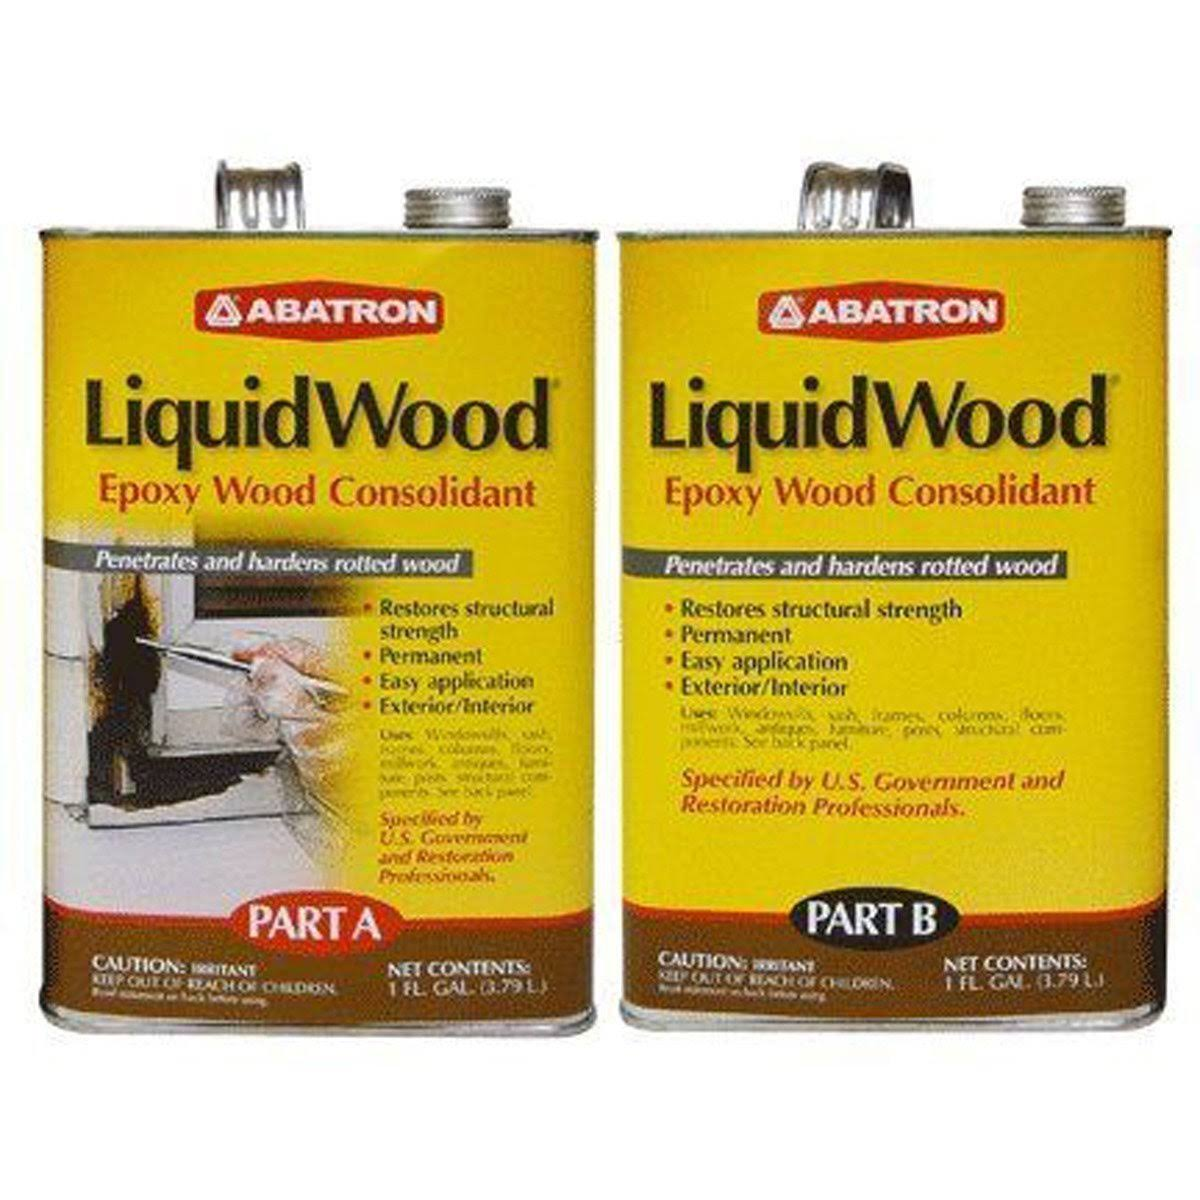 Abatron Liquidwood Epoxy Wood Consolidant Part A & Part B